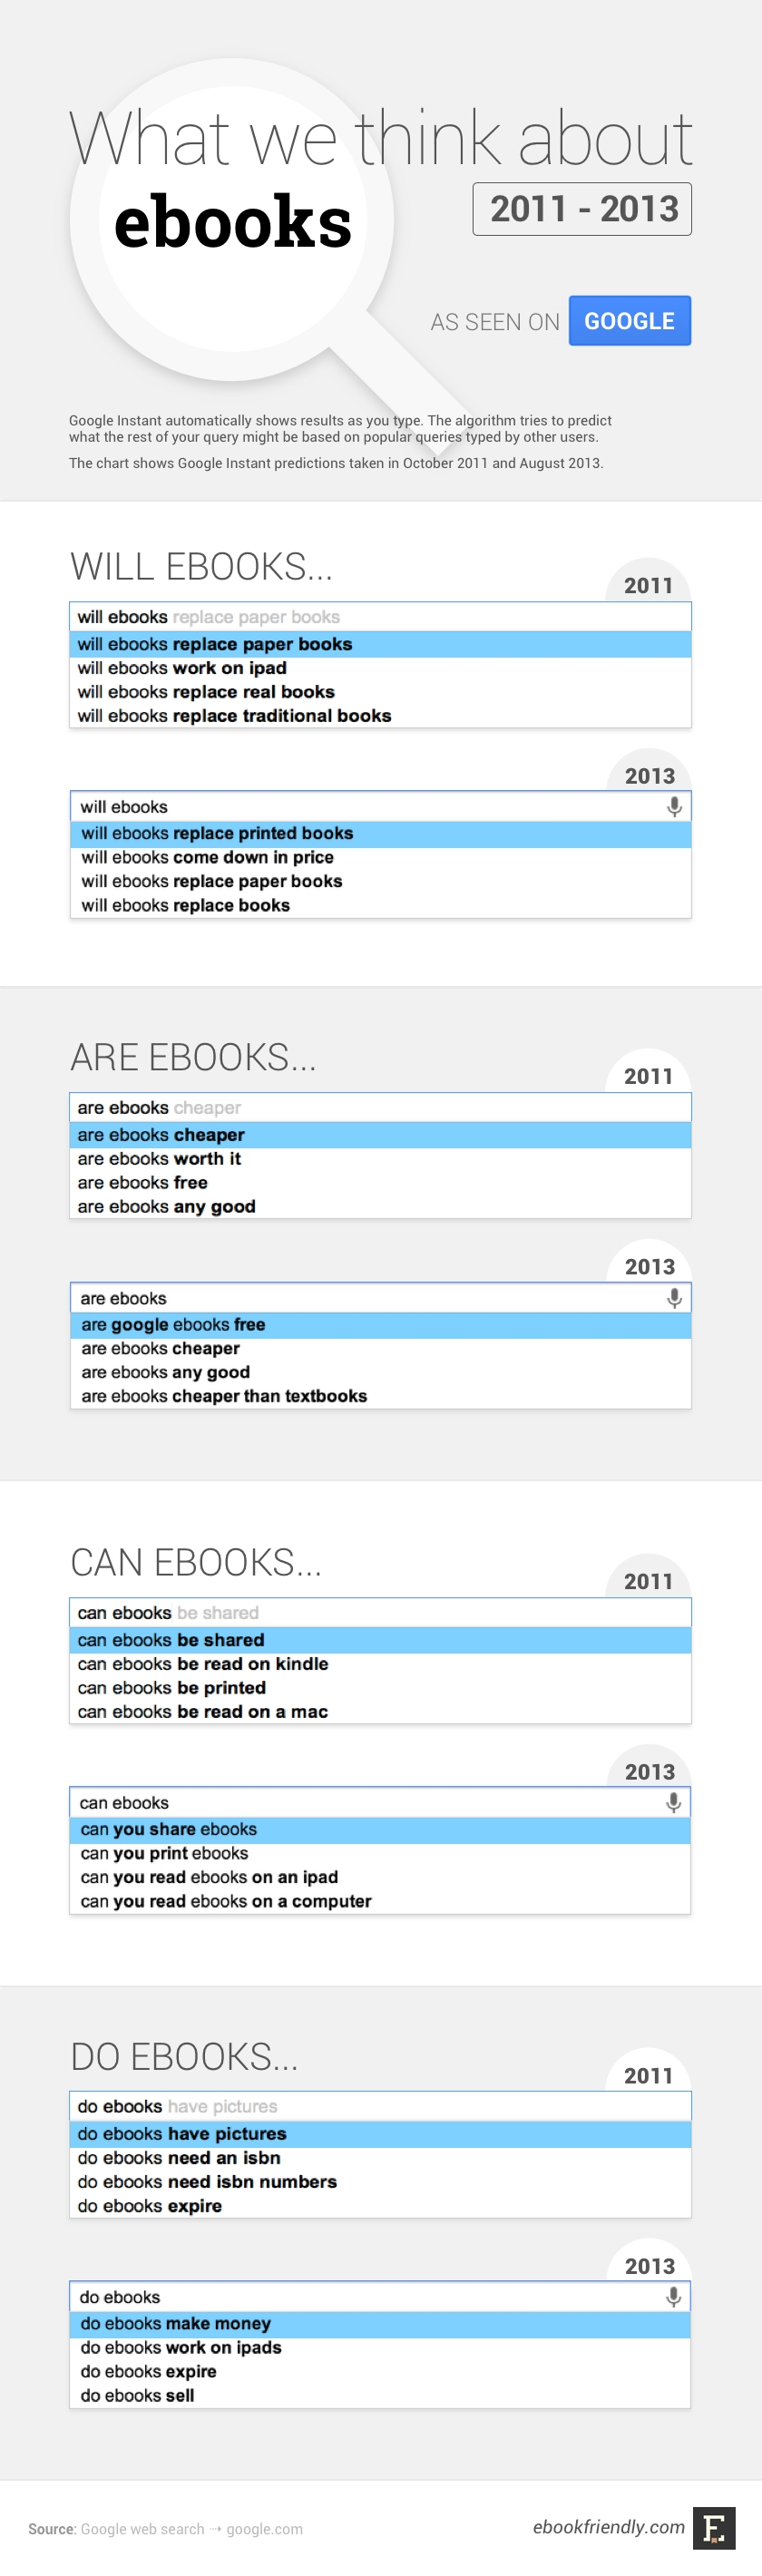 What we think about ebooks, 2011-2013 | Ebook Friendly